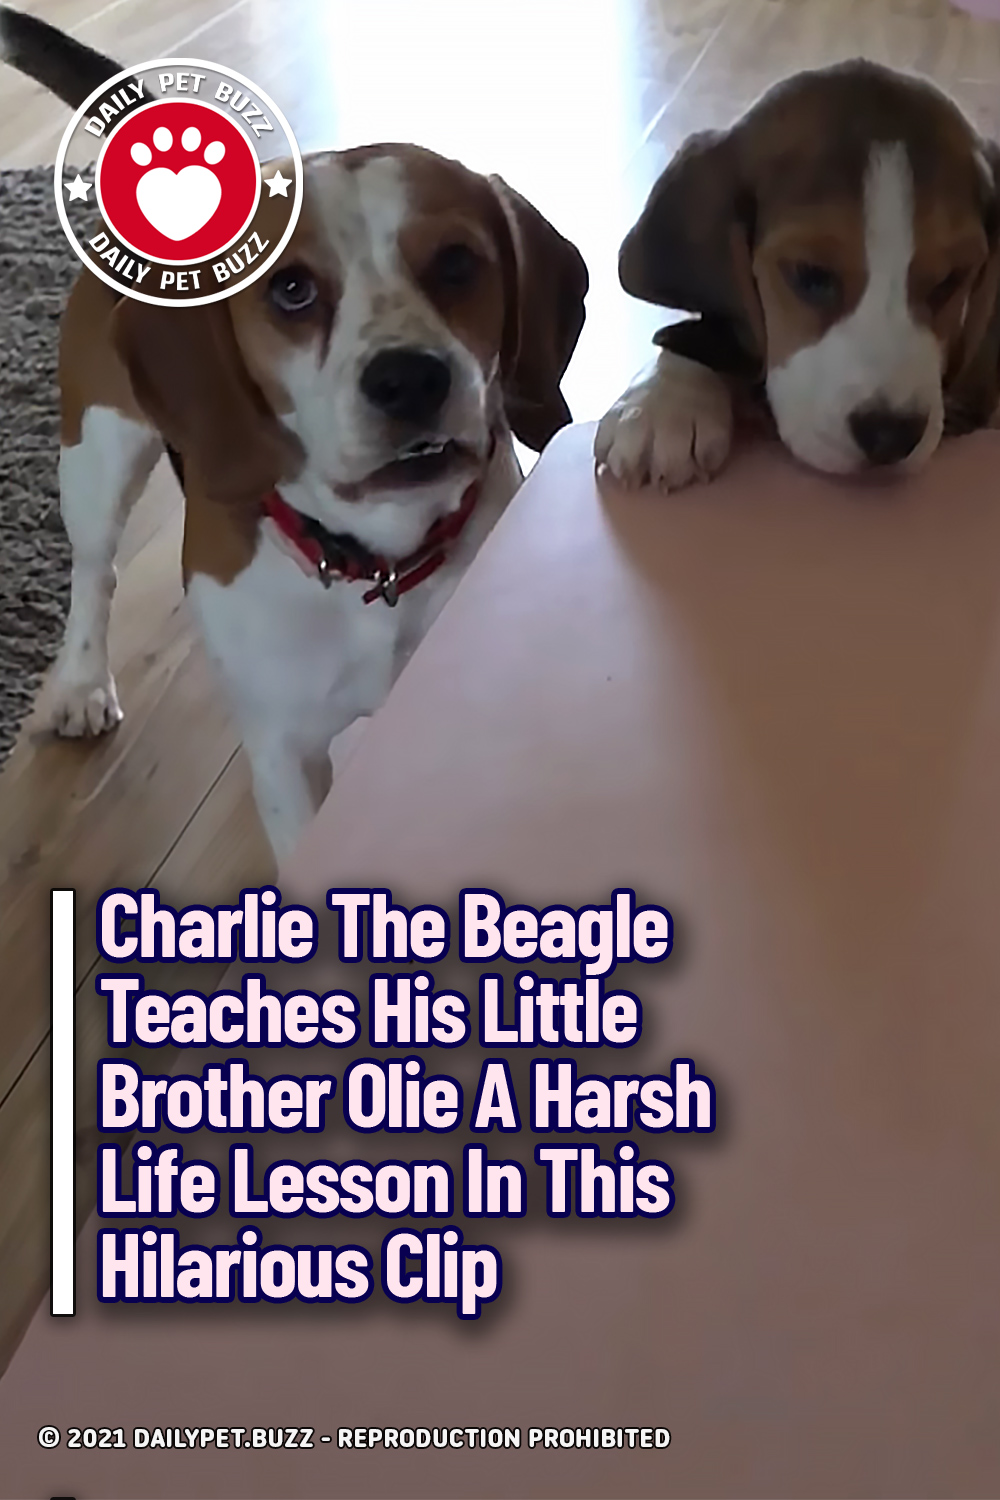 Charlie The Beagle Teaches His Little Brother Olie A Harsh Life Lesson In This Hilarious Clip